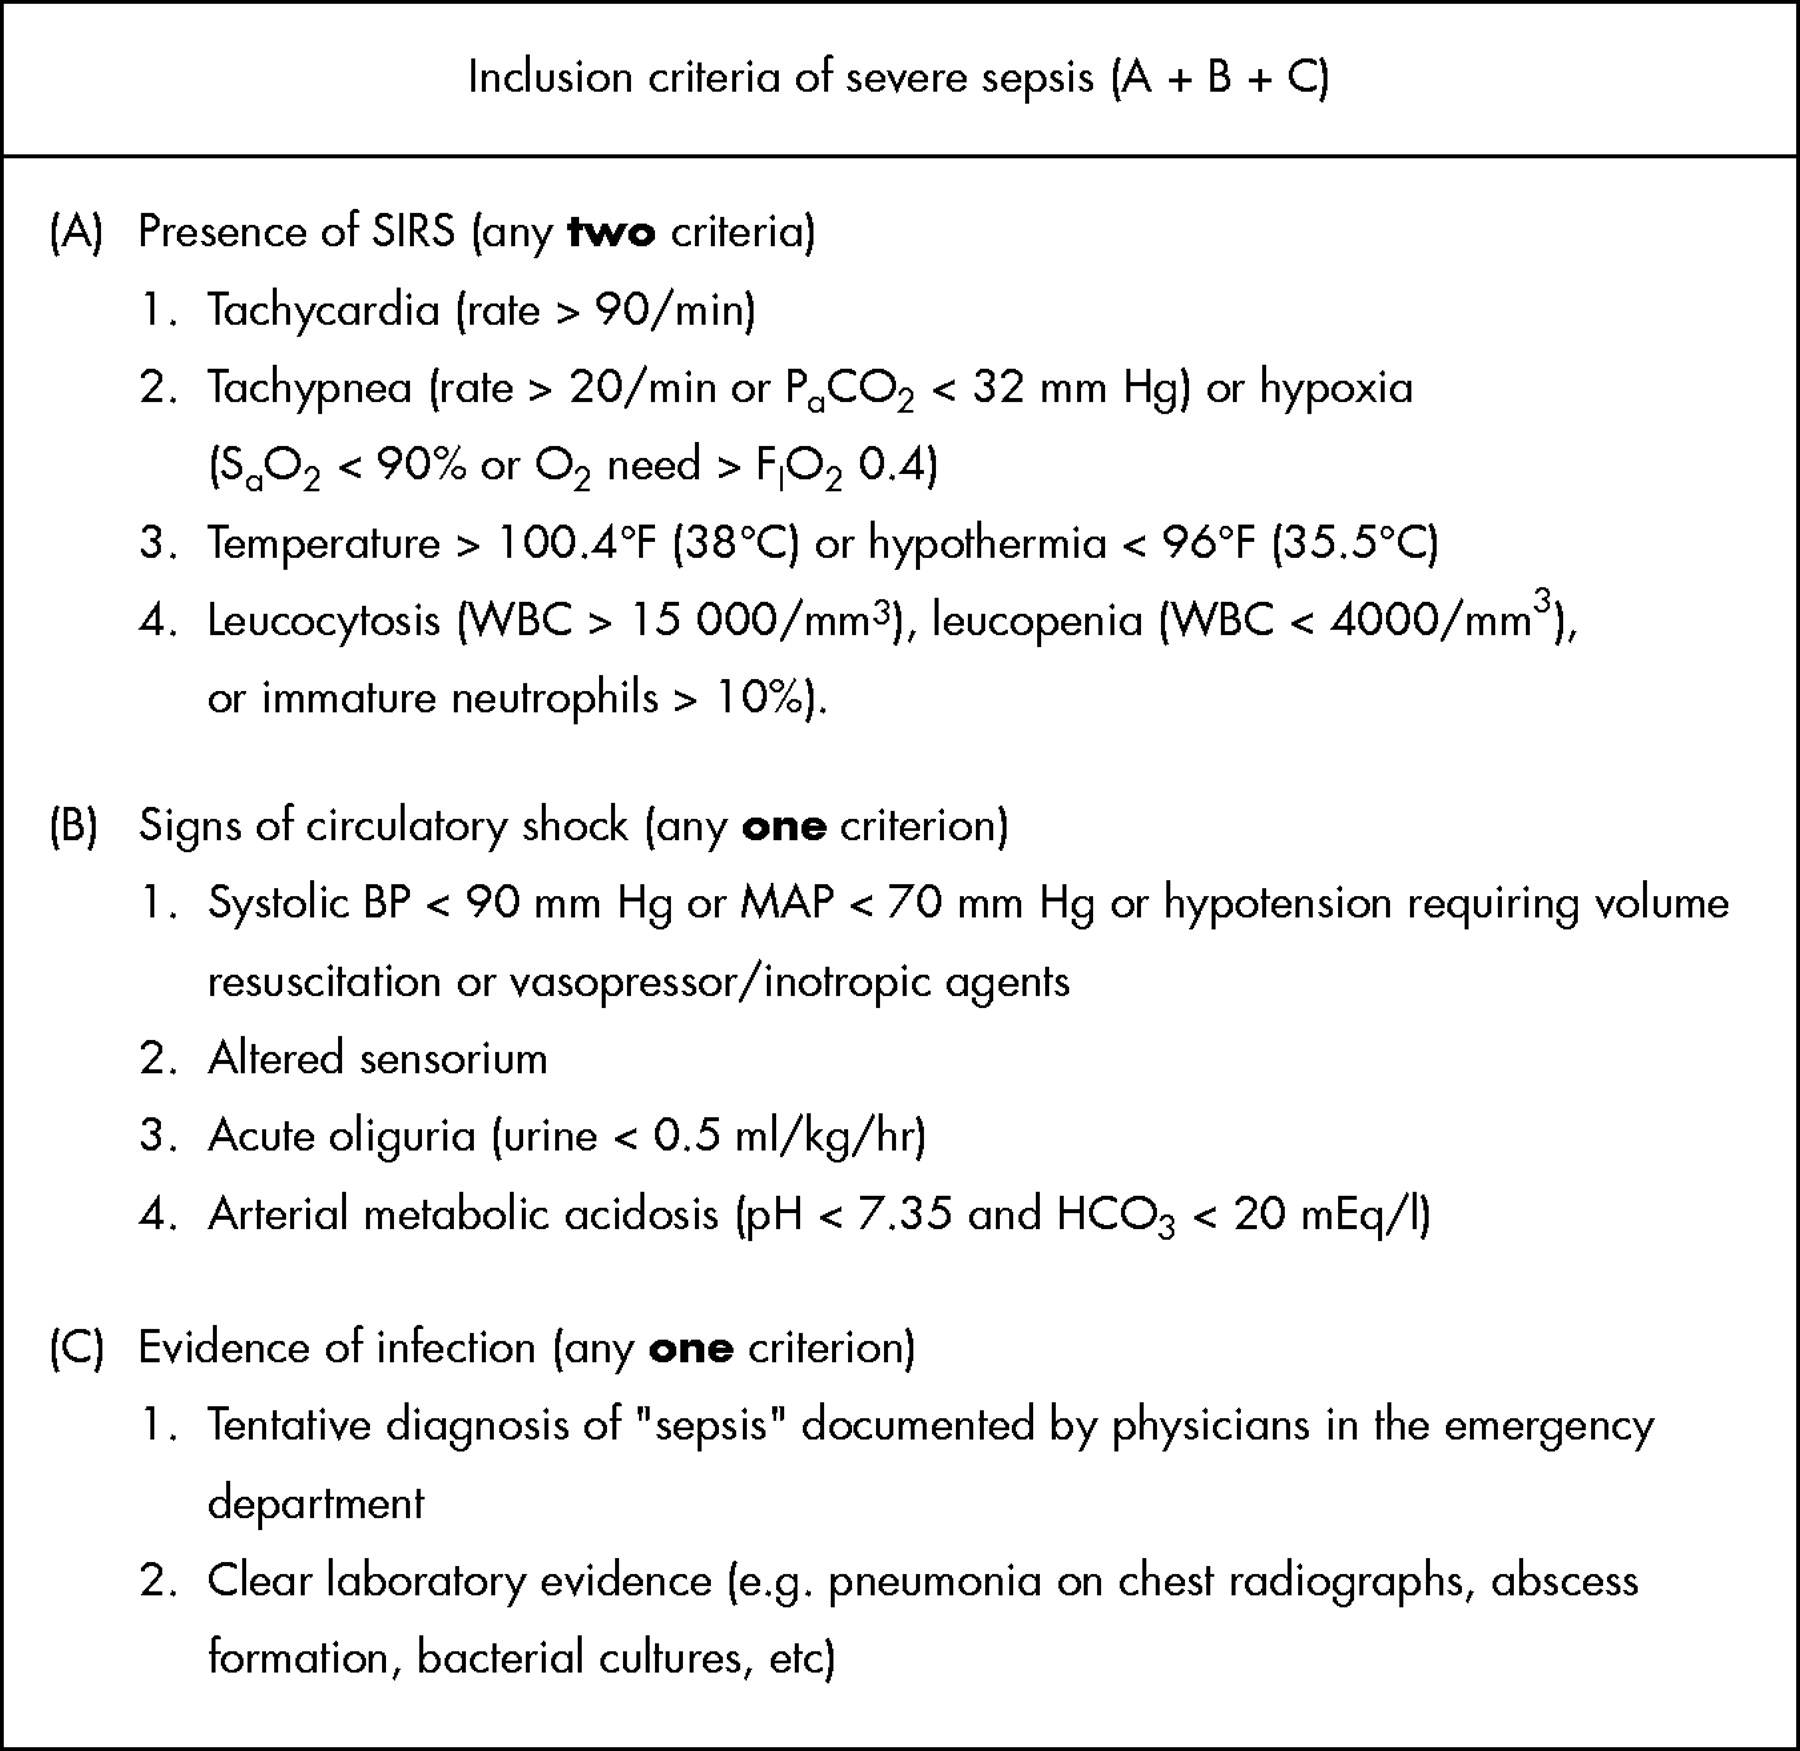 risk stratification of severe sepsis patients in the